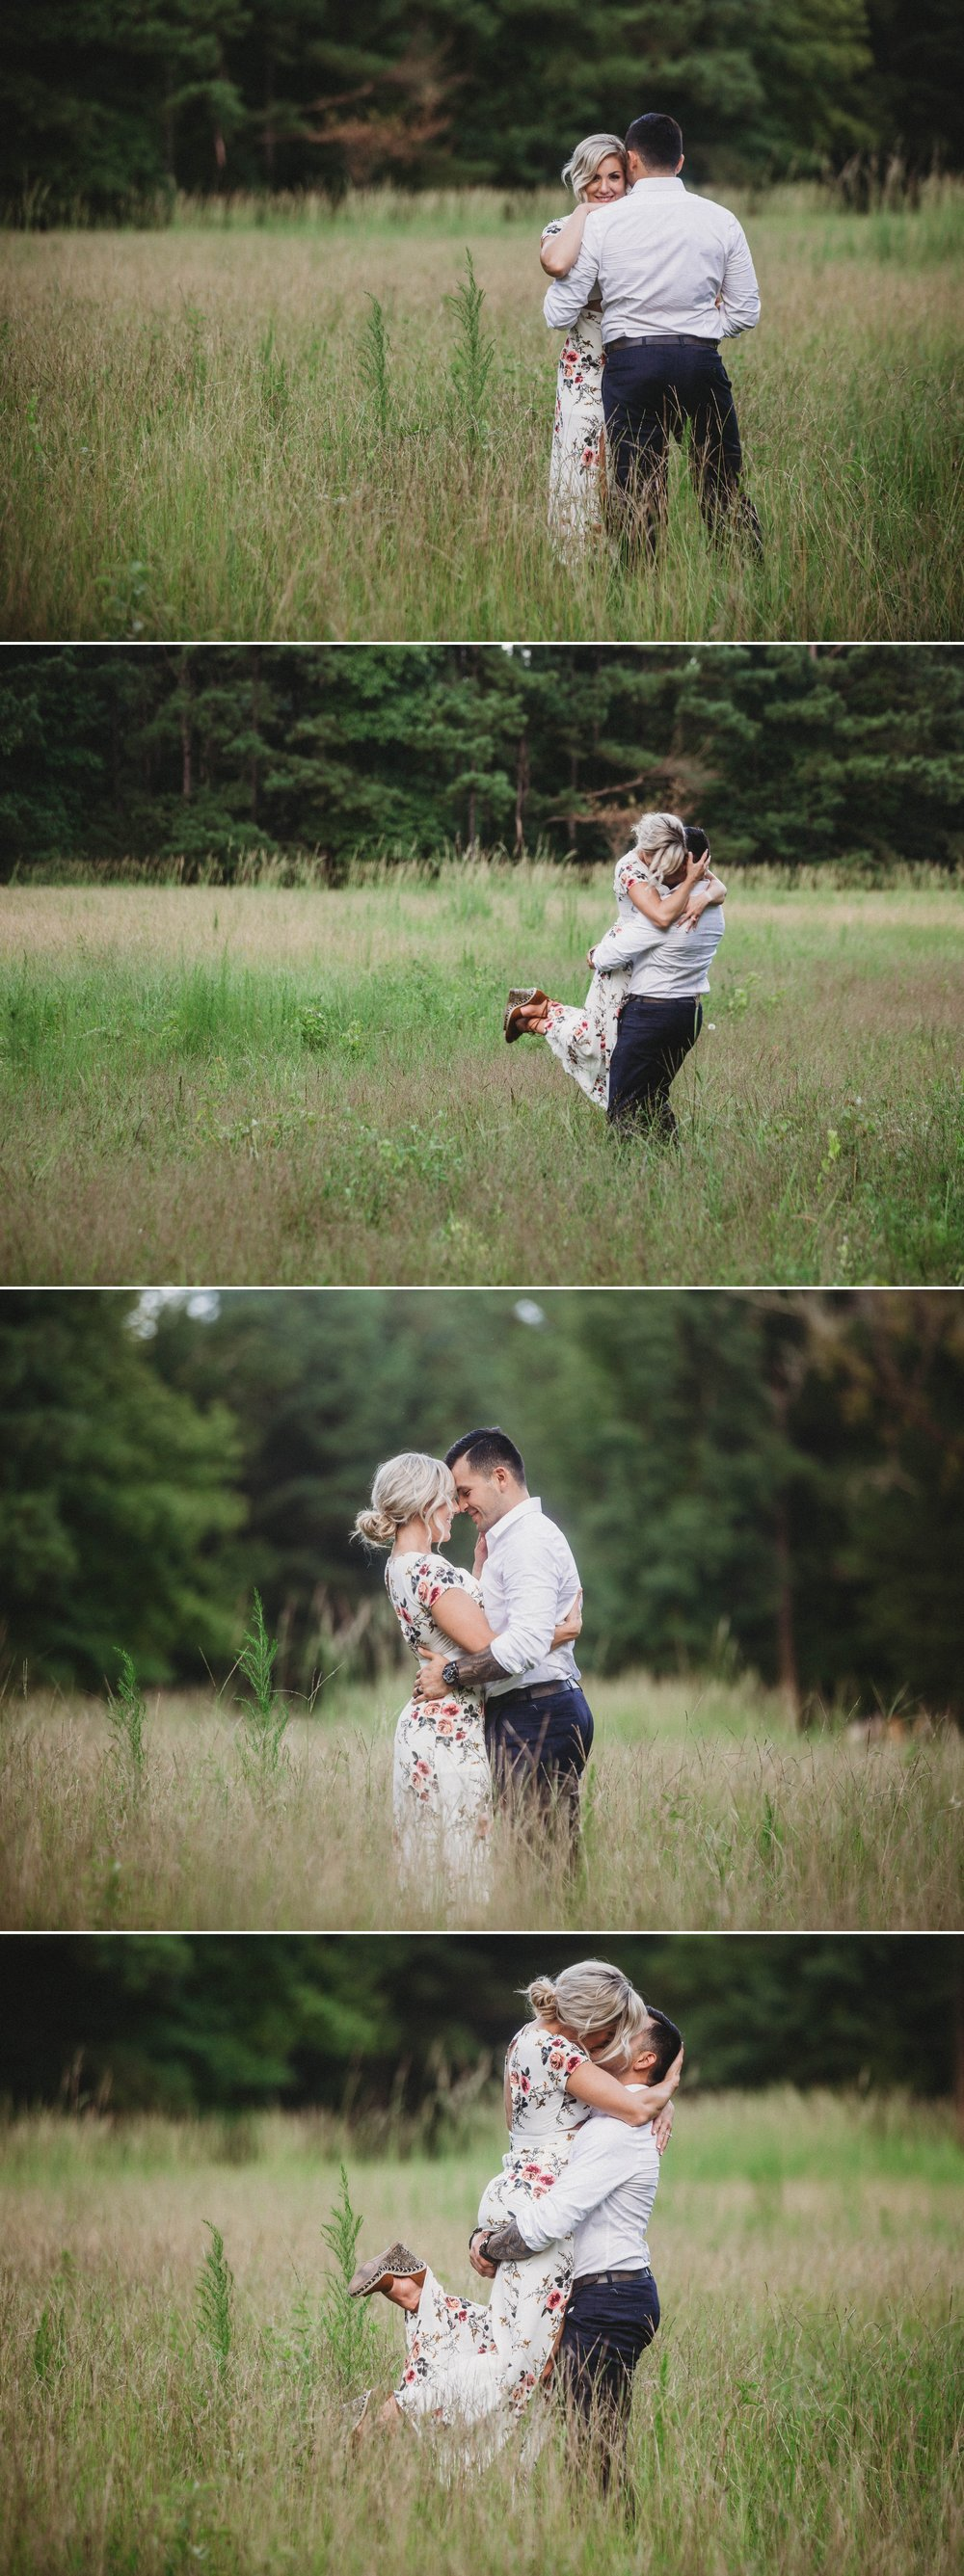 Cassie + Jesse - Engagement Photography Session in a field - Fayetteville North Carolina Wedding Photographer 5.jpg